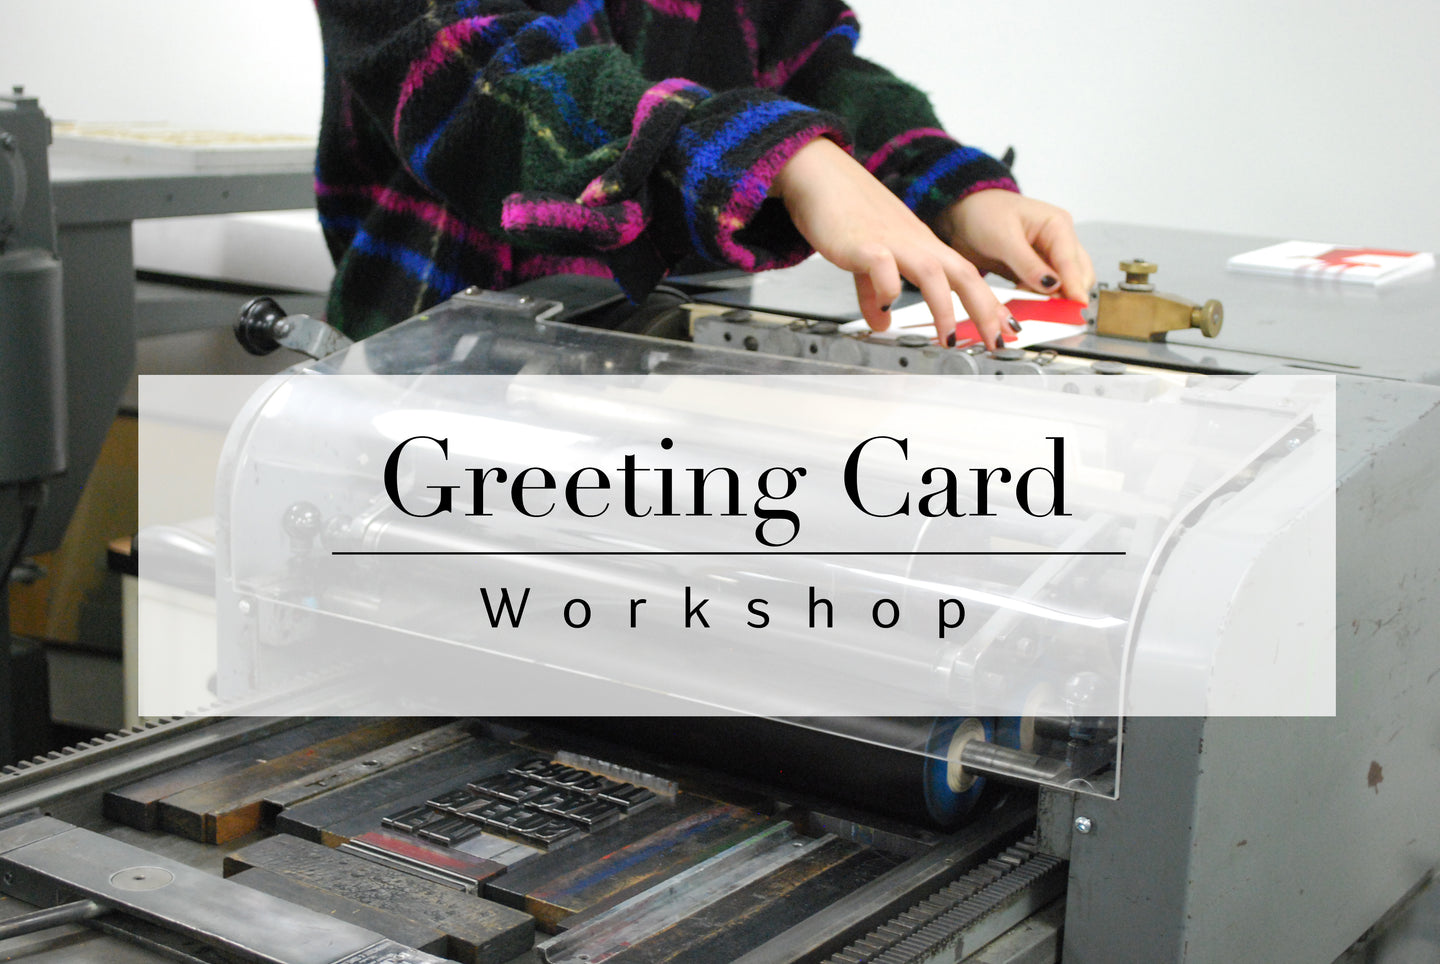 Greeting Card Workshop October 13th